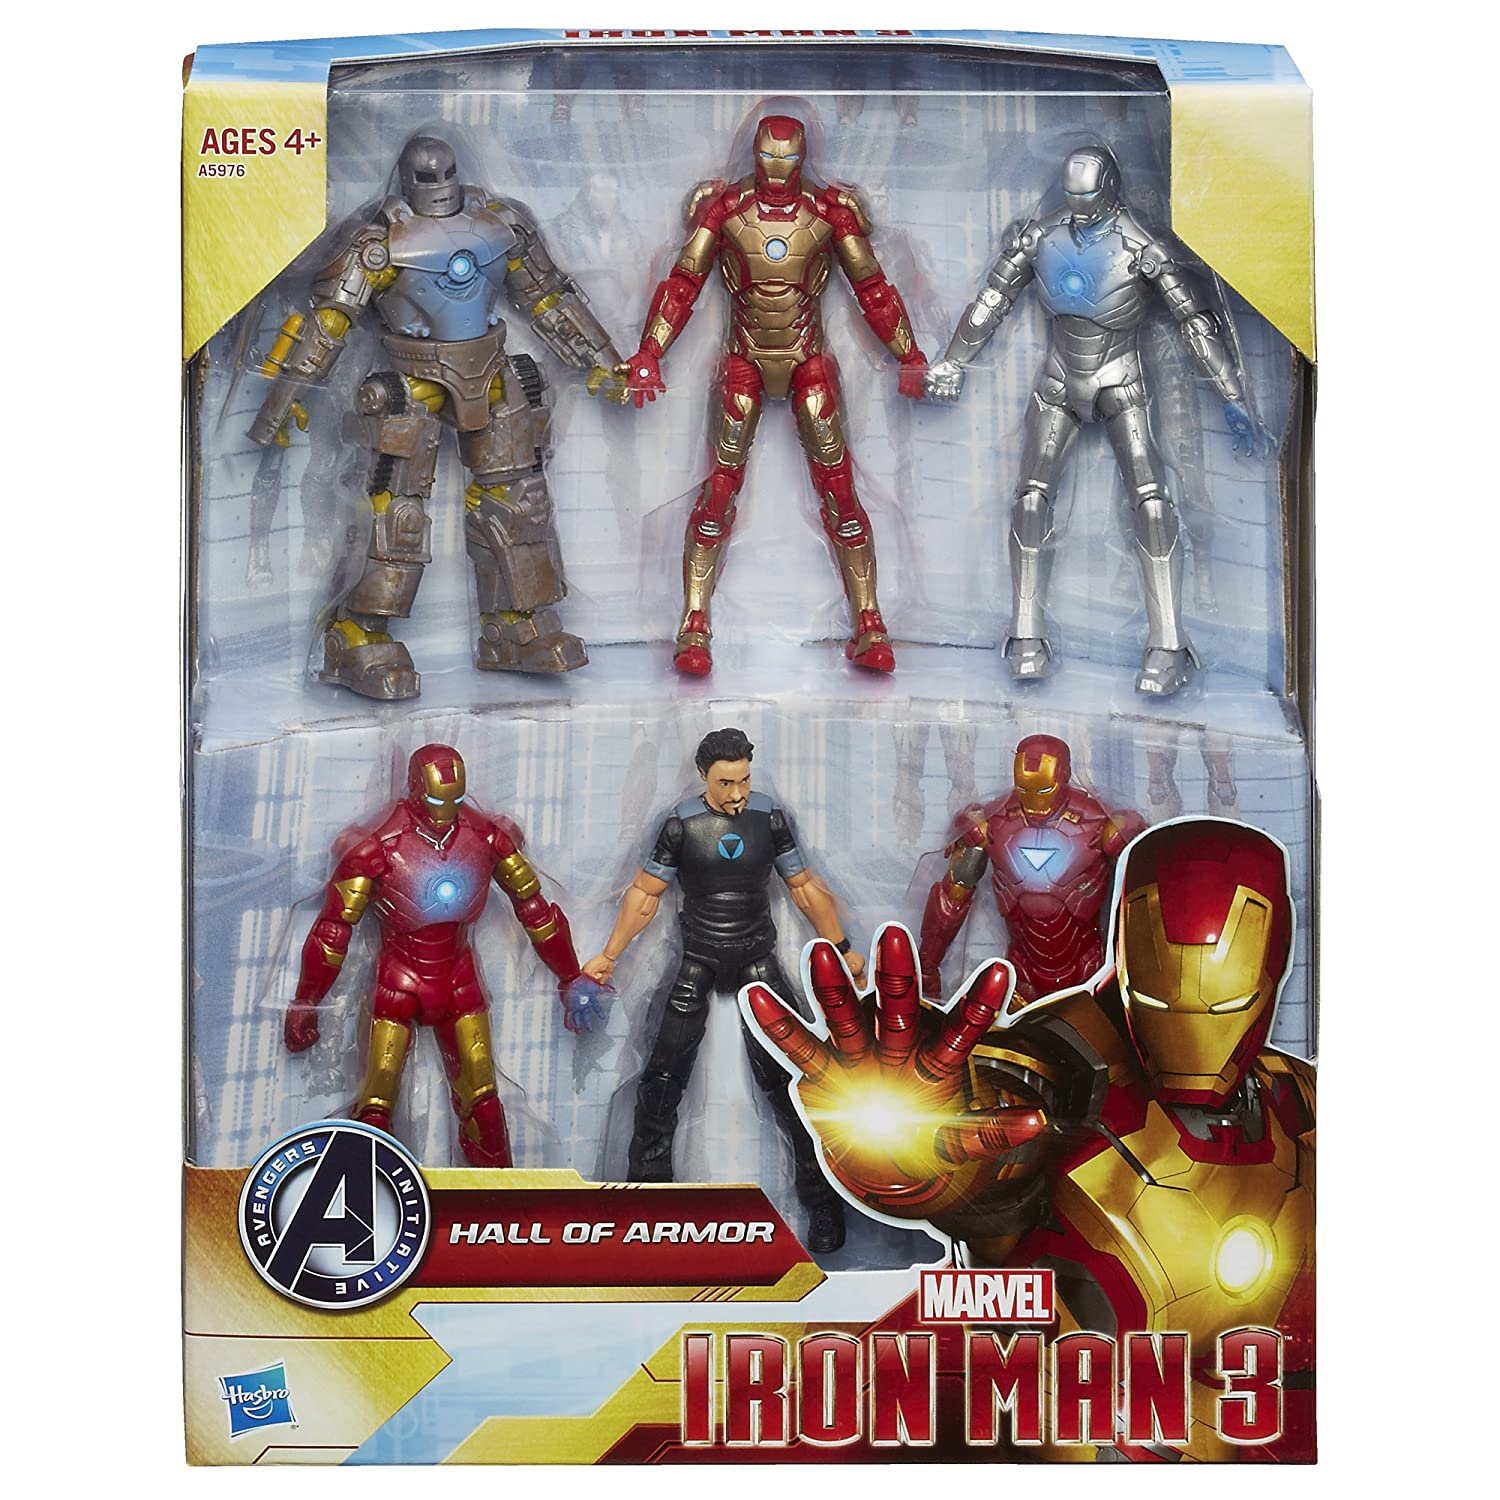 Toys For 3 And 6 : Iron man hall of armor set online at target and walmart